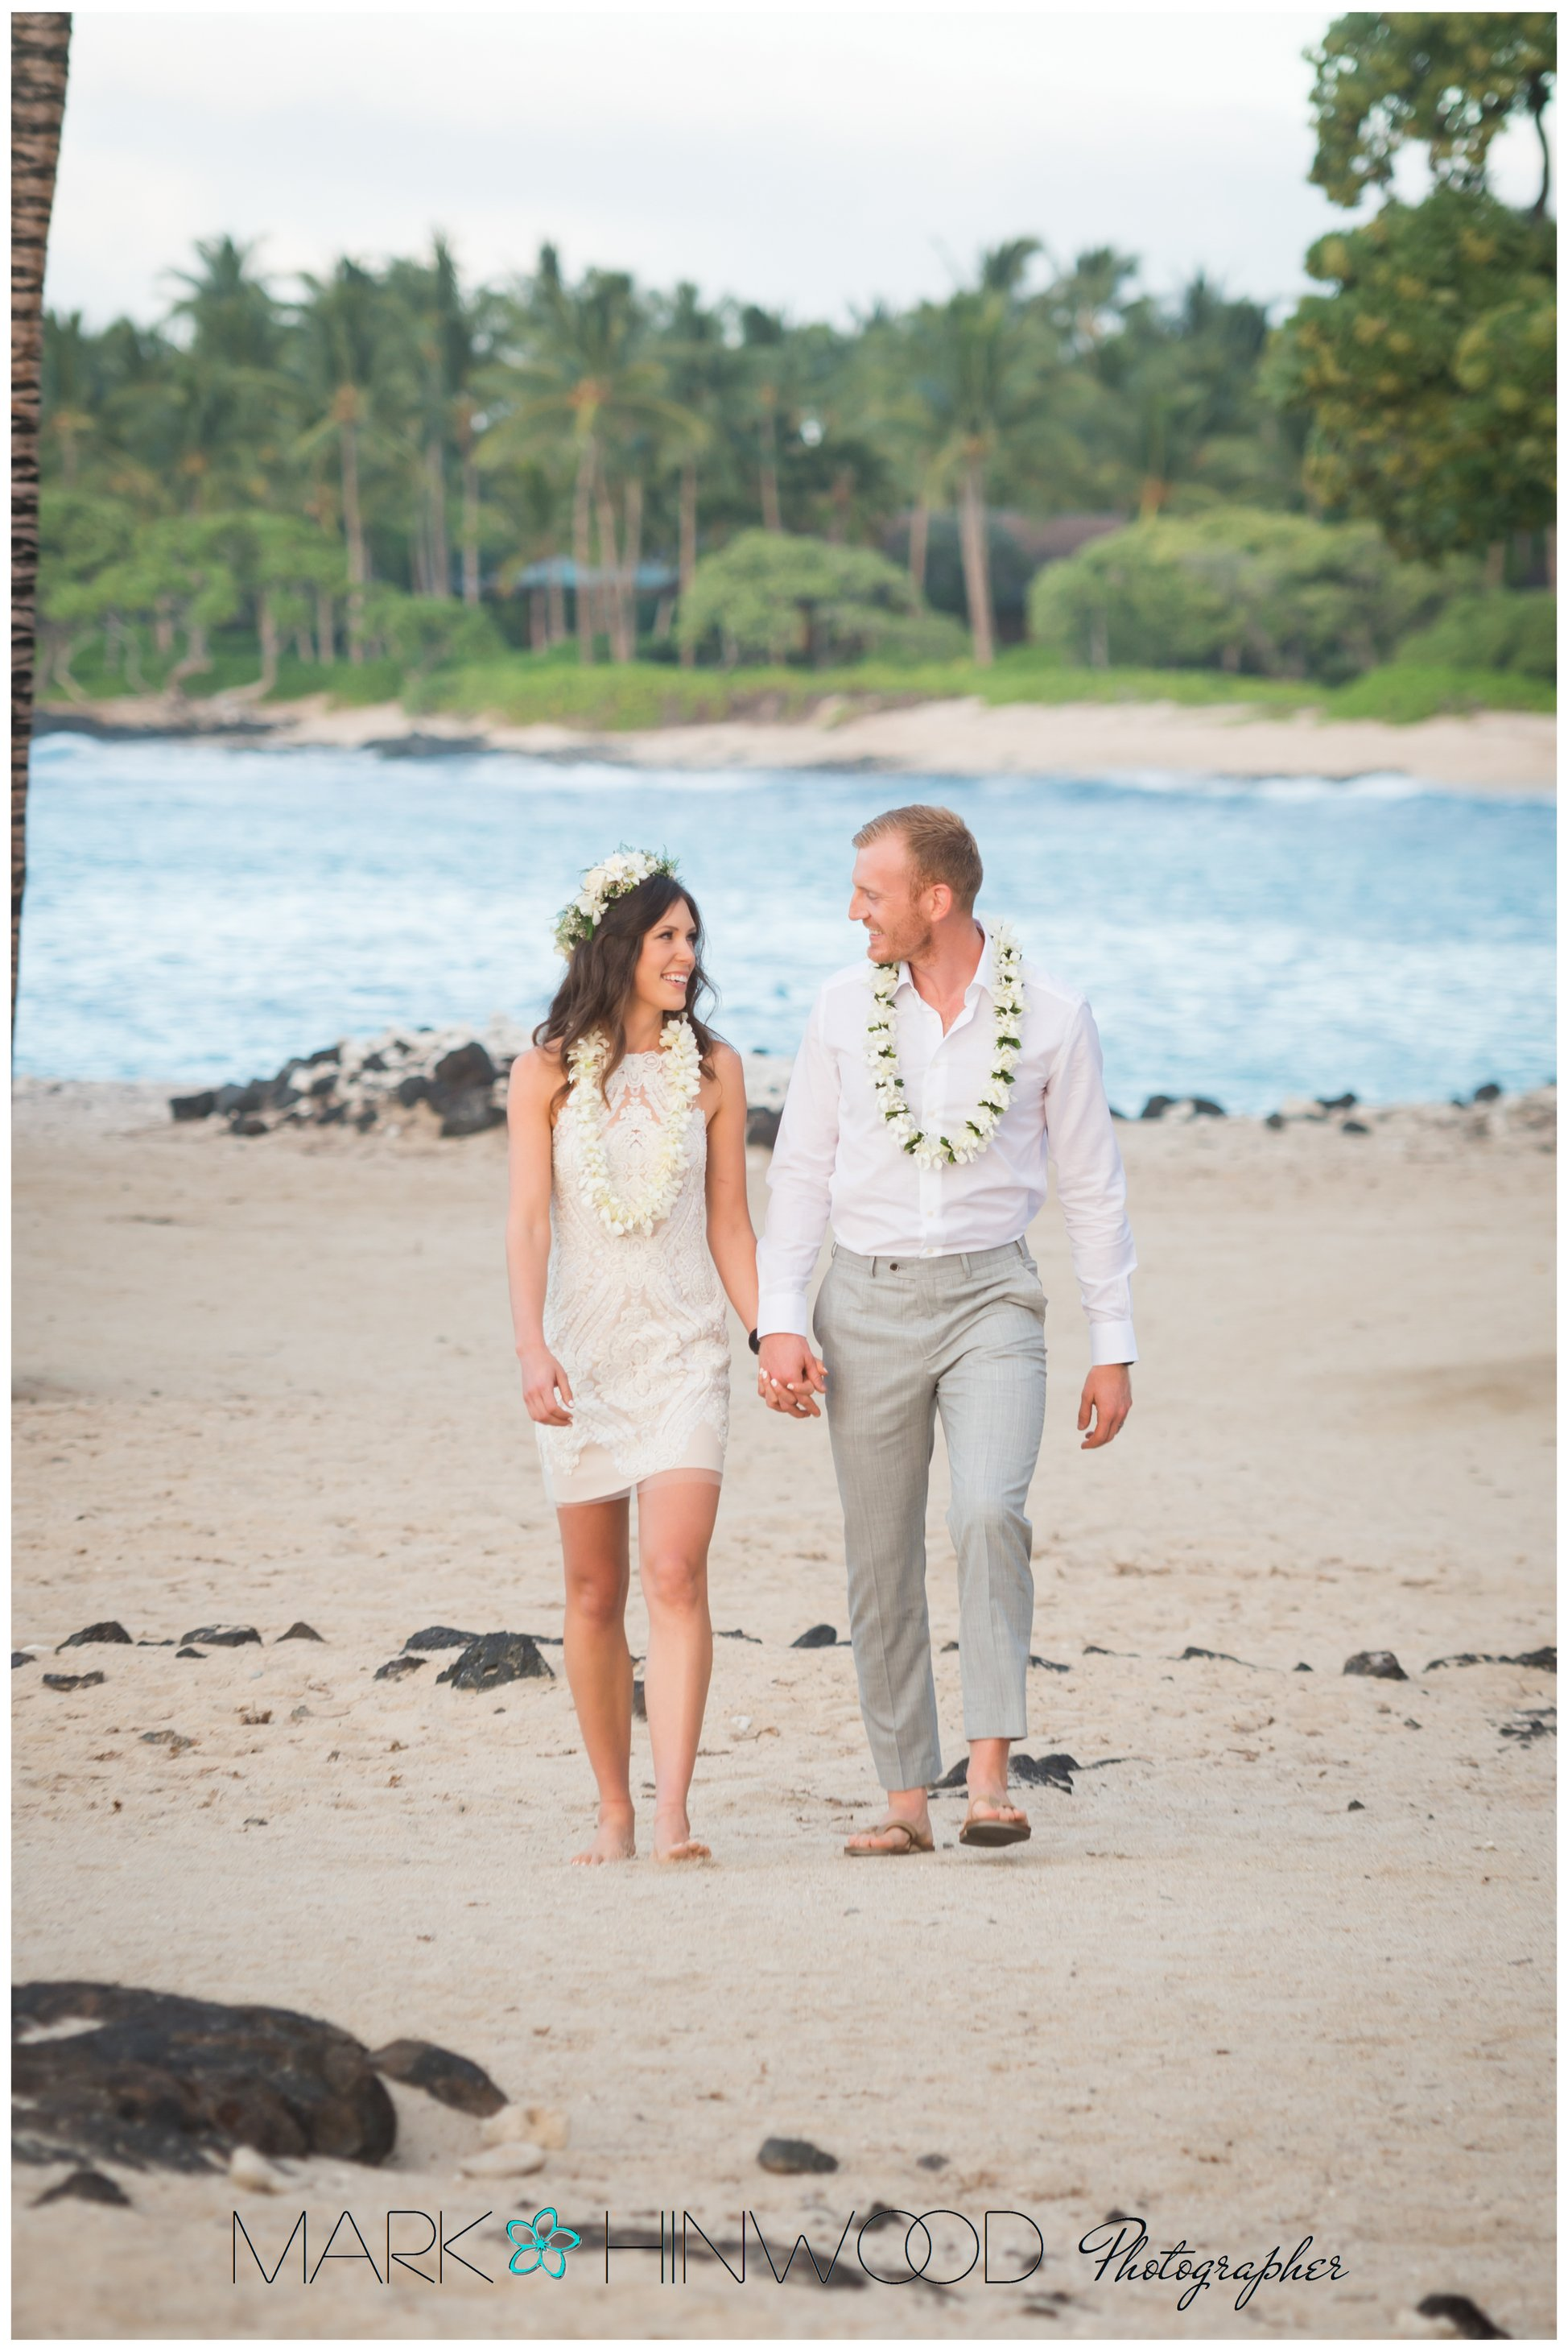 Simple Kona beach weddings 6a